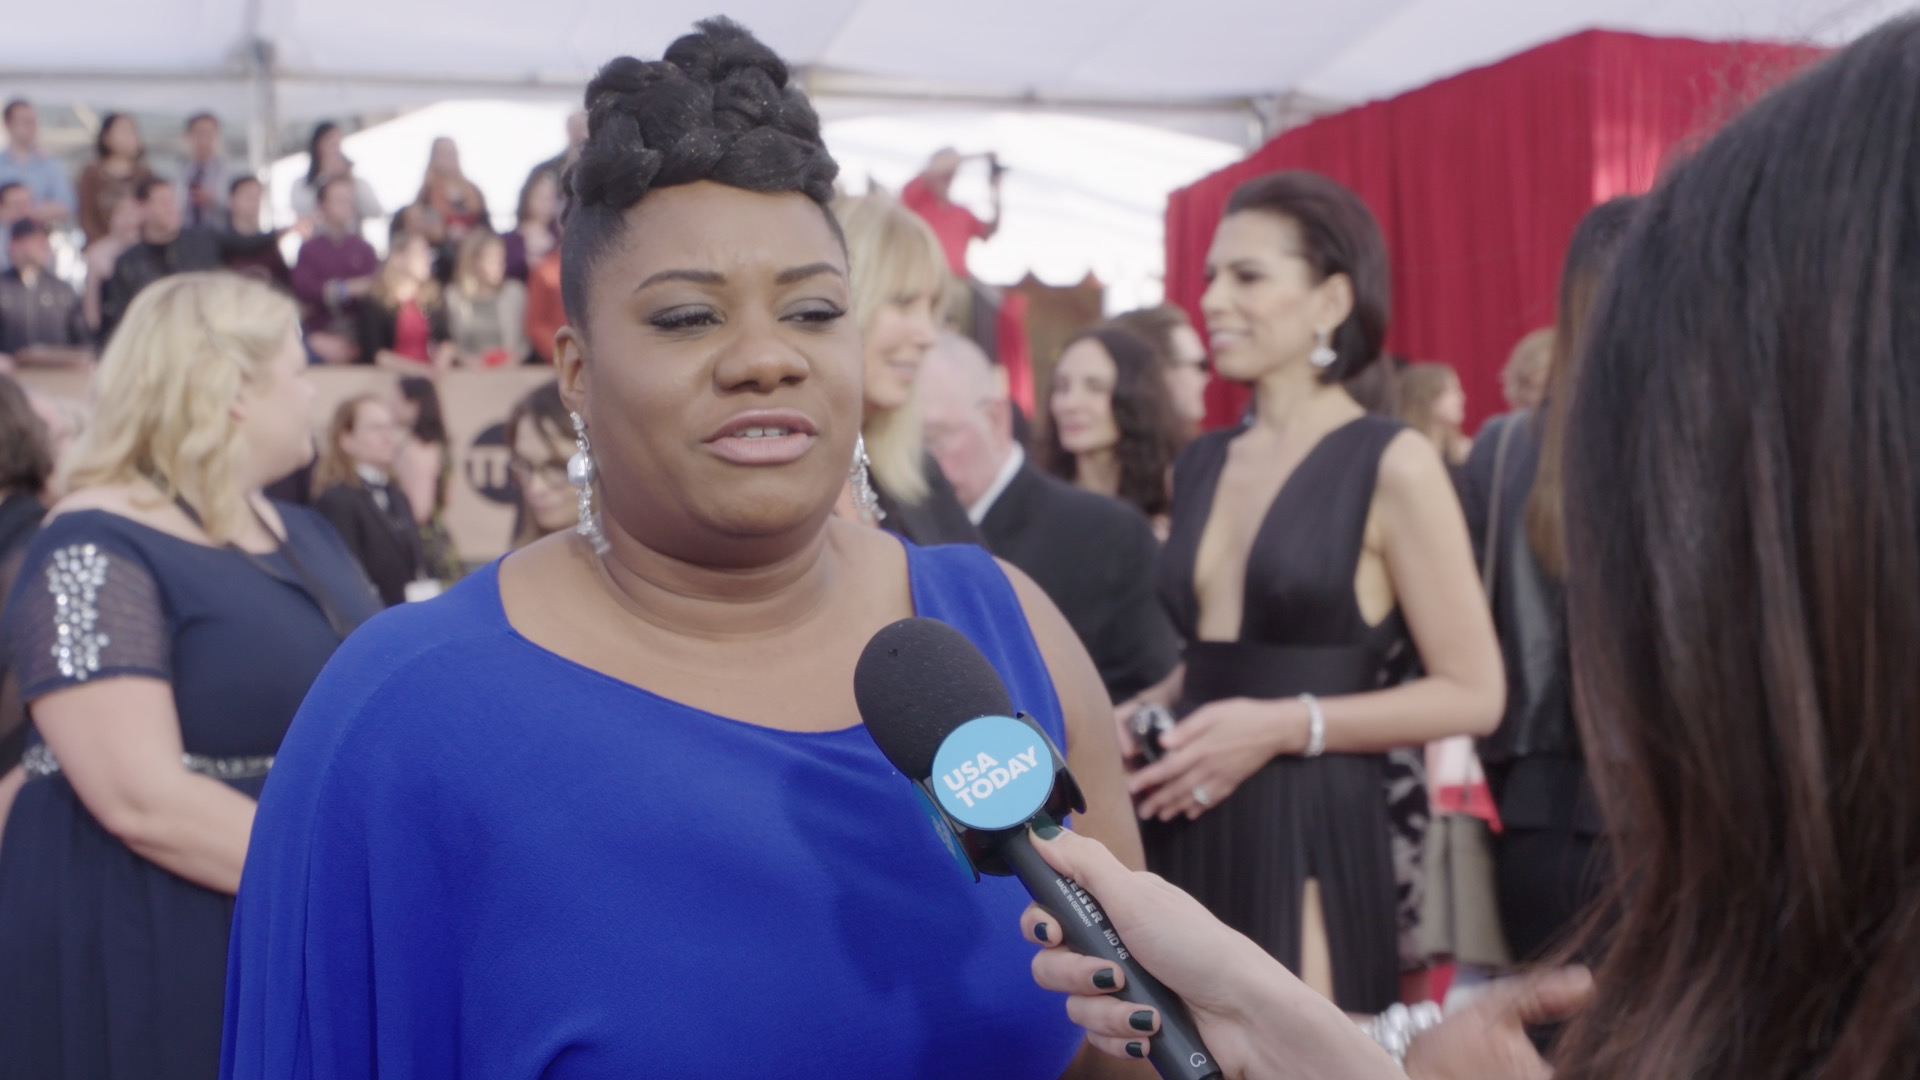 Hollywood speaks out about diversity and the Oscars